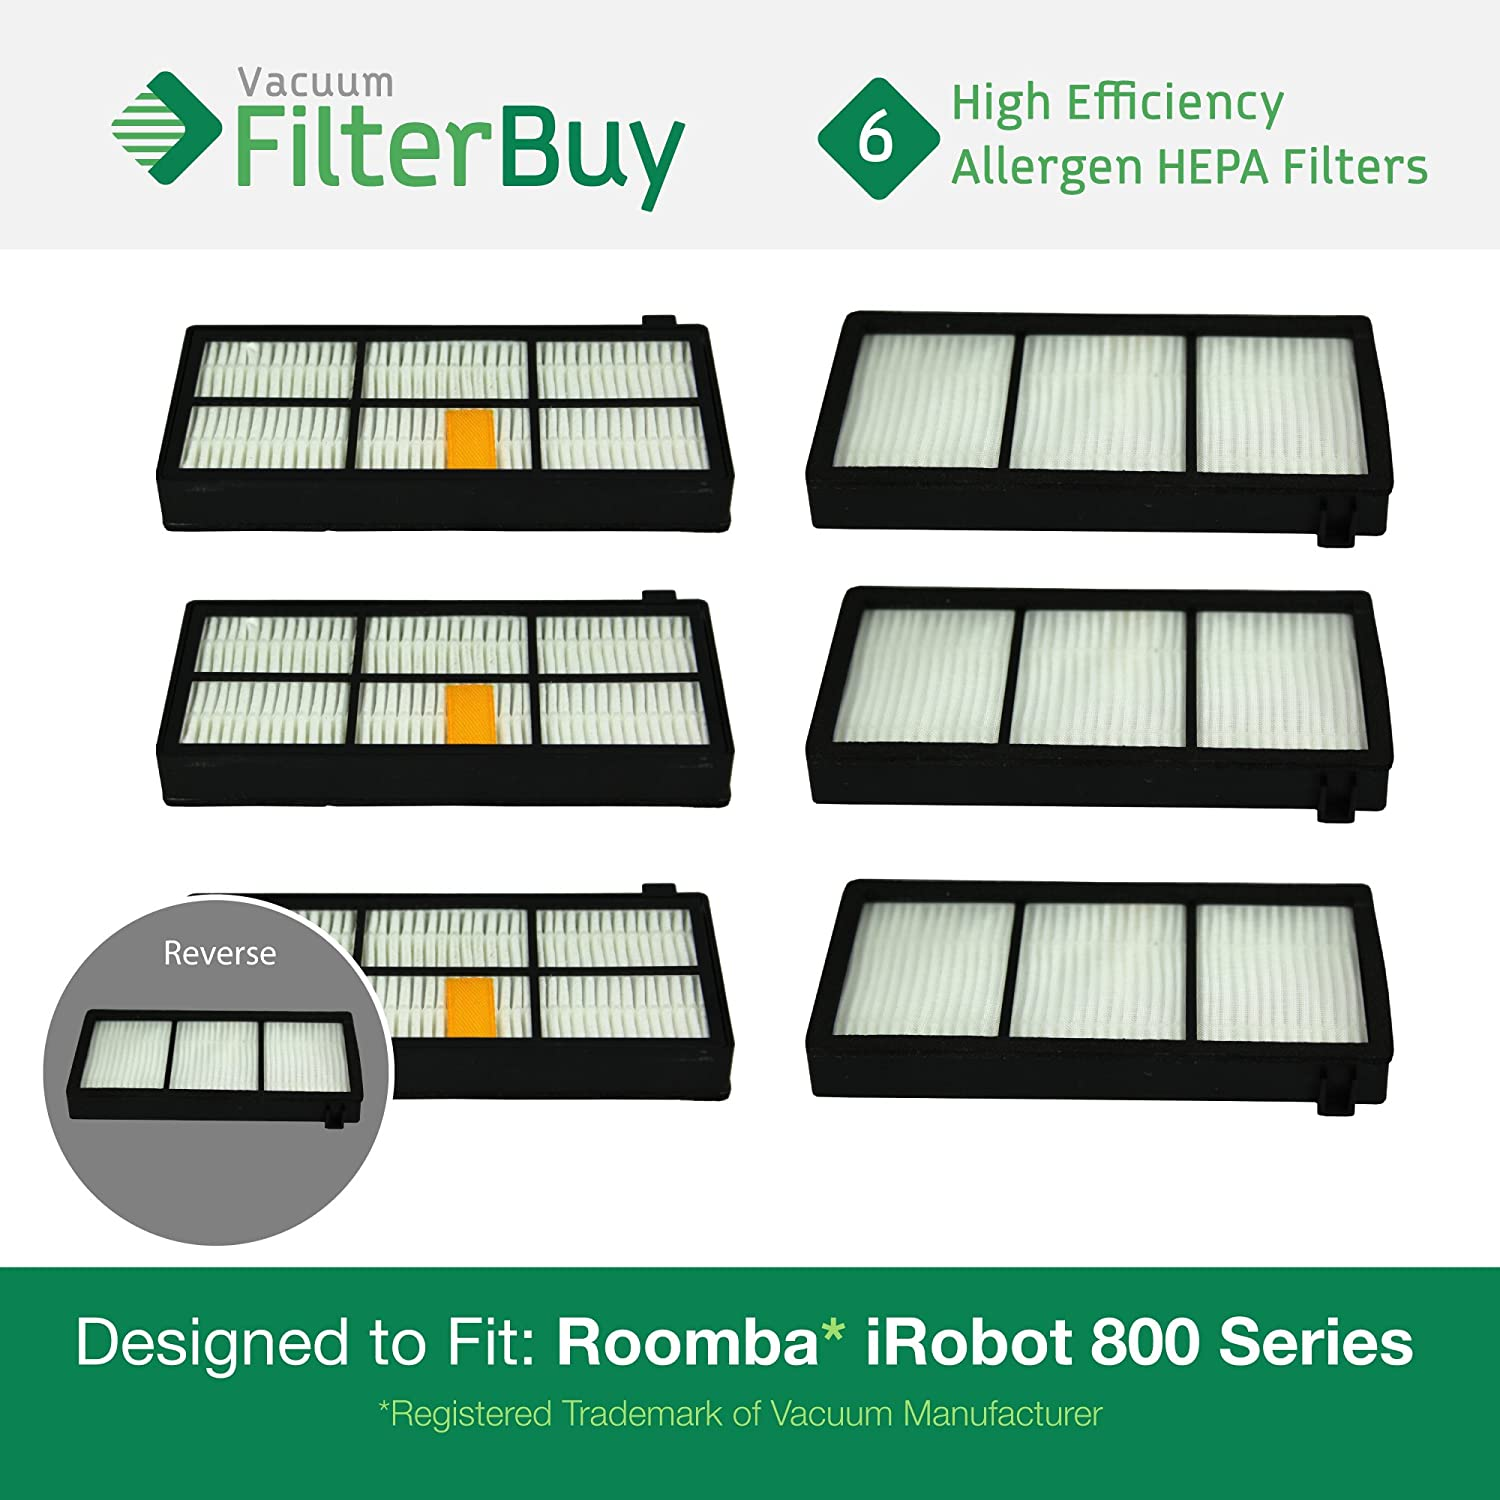 6 - iRobot Roomba 800 900 Series AeroForce Replacement Filters. Designed by FilterBuy to replace all iRobot Roomba 800 & 900 Series Vacuum Filters